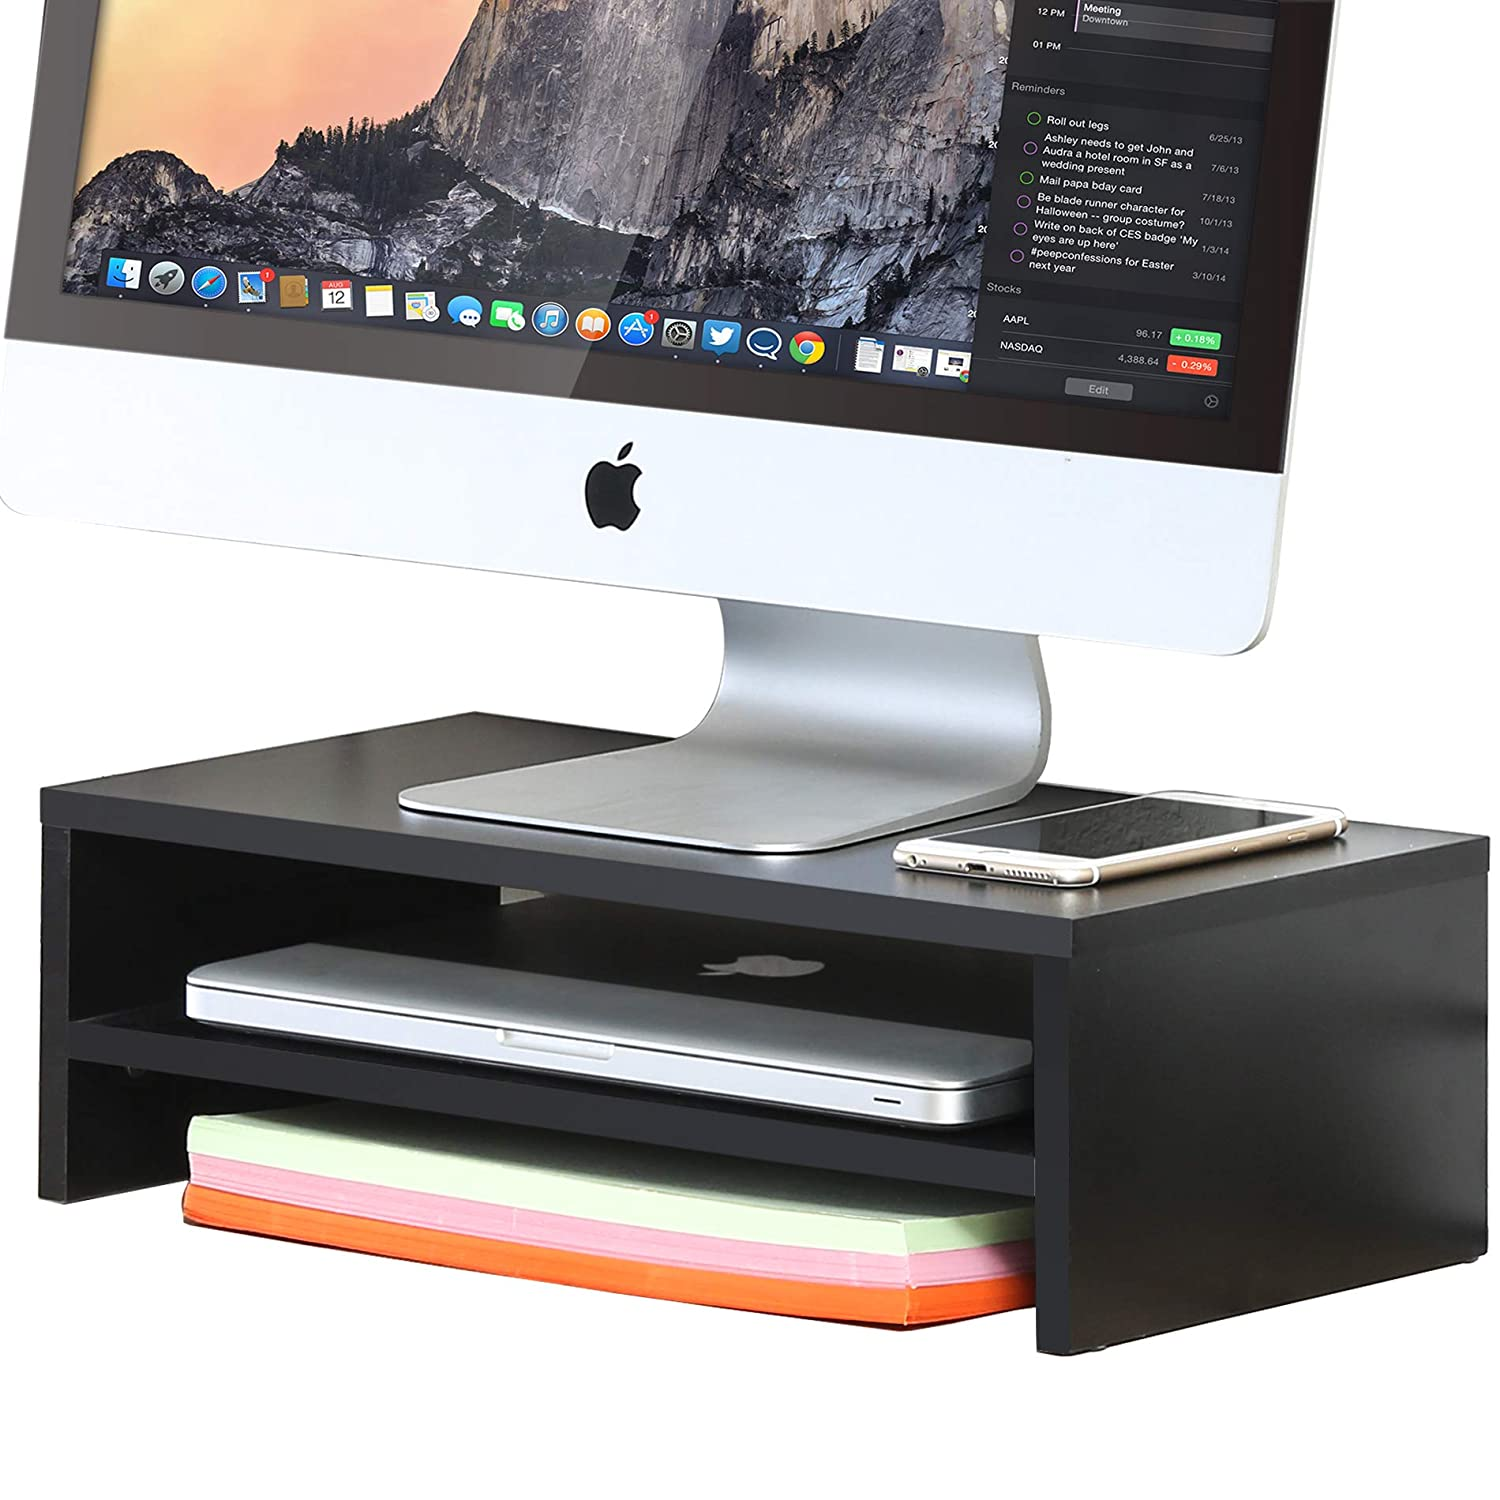 FITUEYES Computer Monitor Riser 16.7 inch Monitor Stand Save Space With Keyboard Organizer DT104201WB FBA_DT104201WB